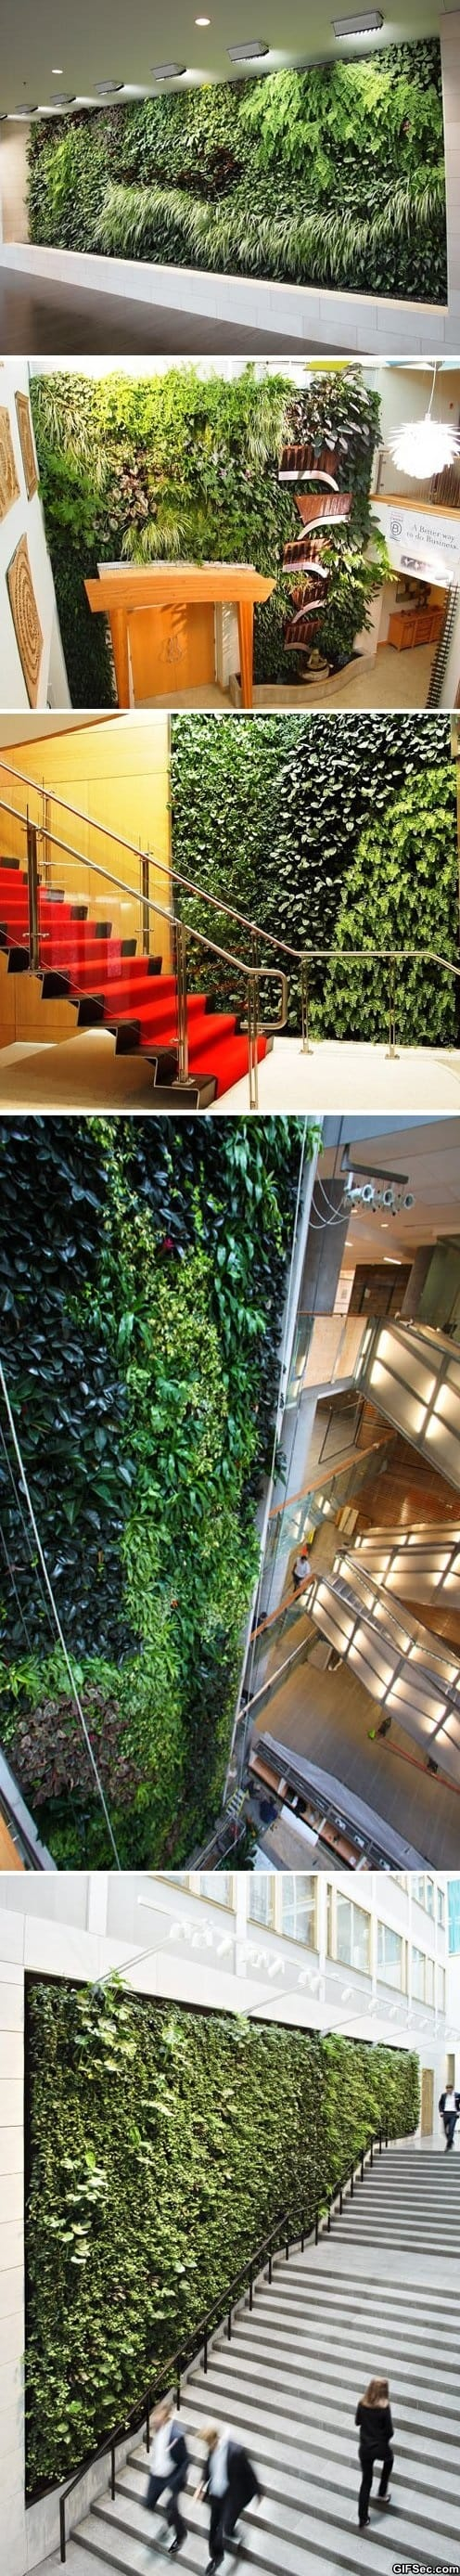 Funny - Living walls art